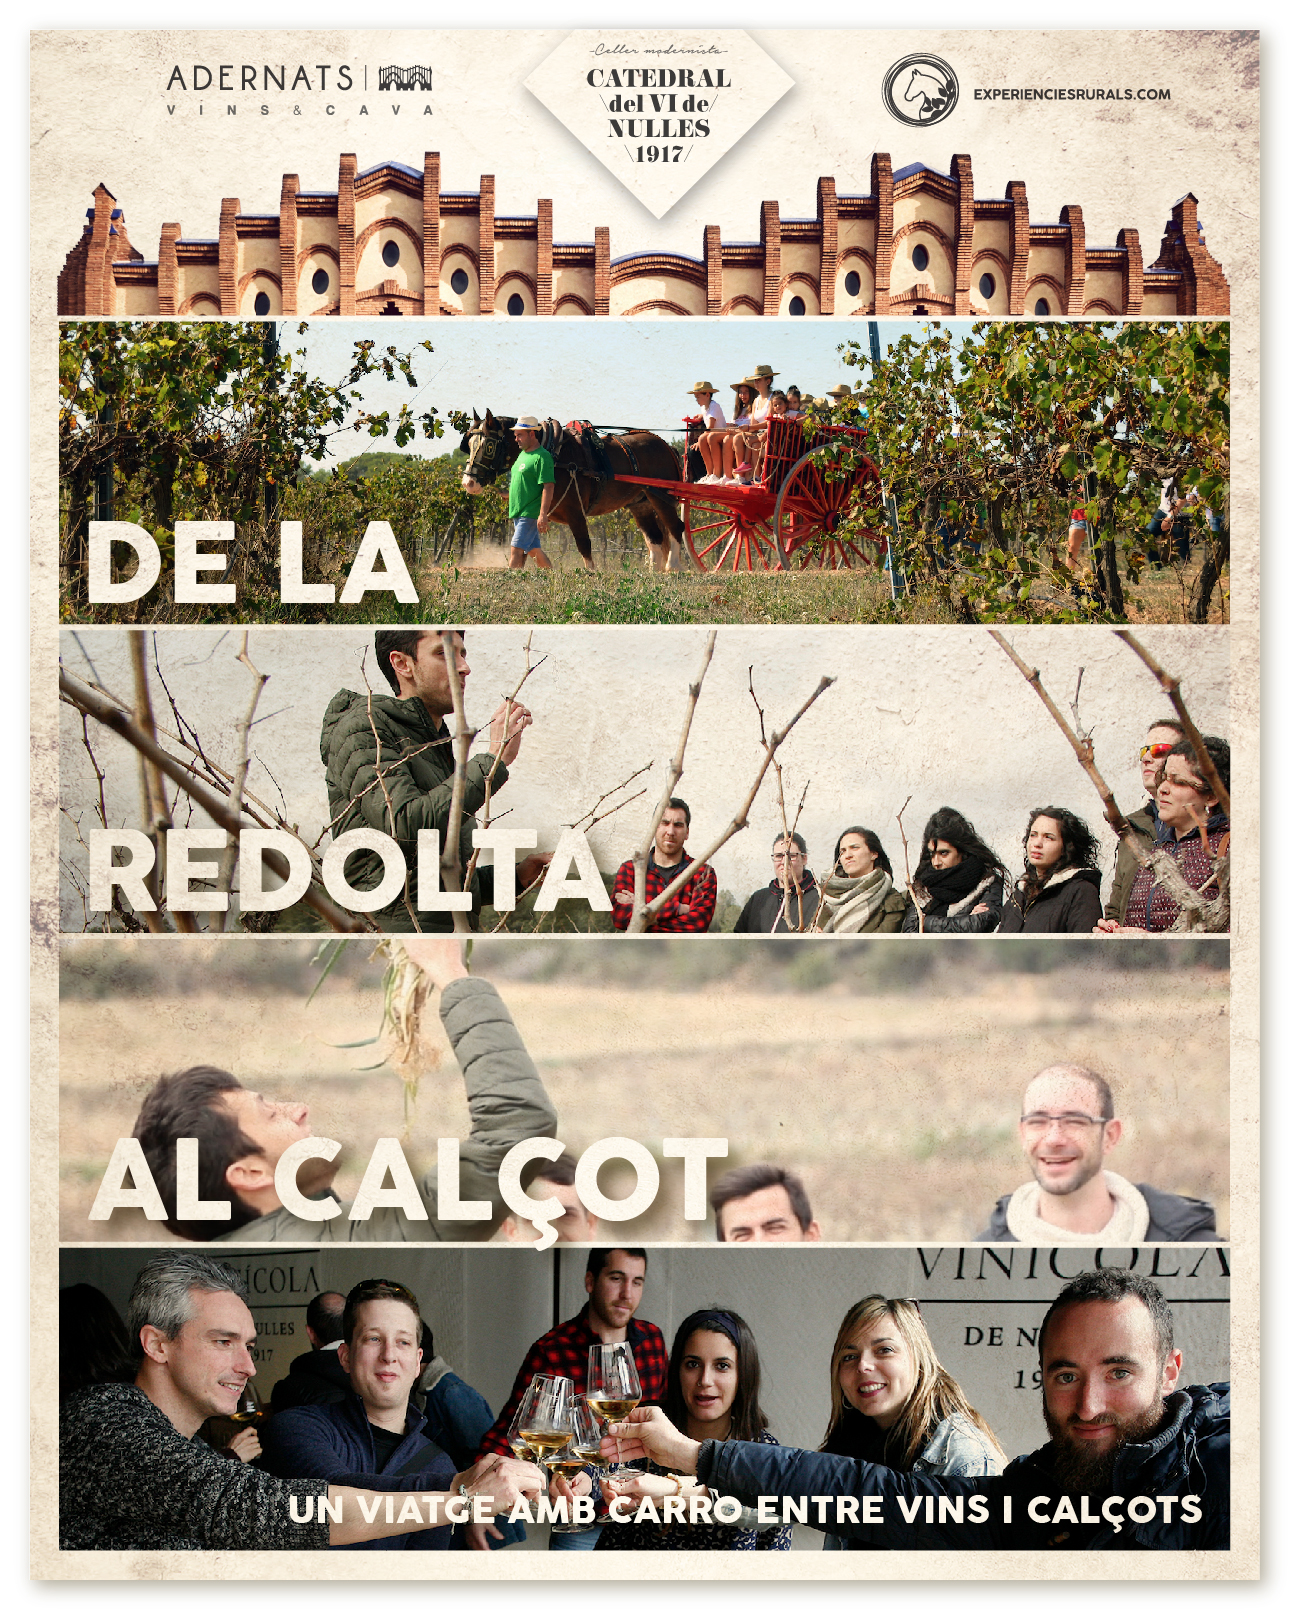 'De la redoll al calçot' the new activity of the winery Adernats i Experiències Rurals